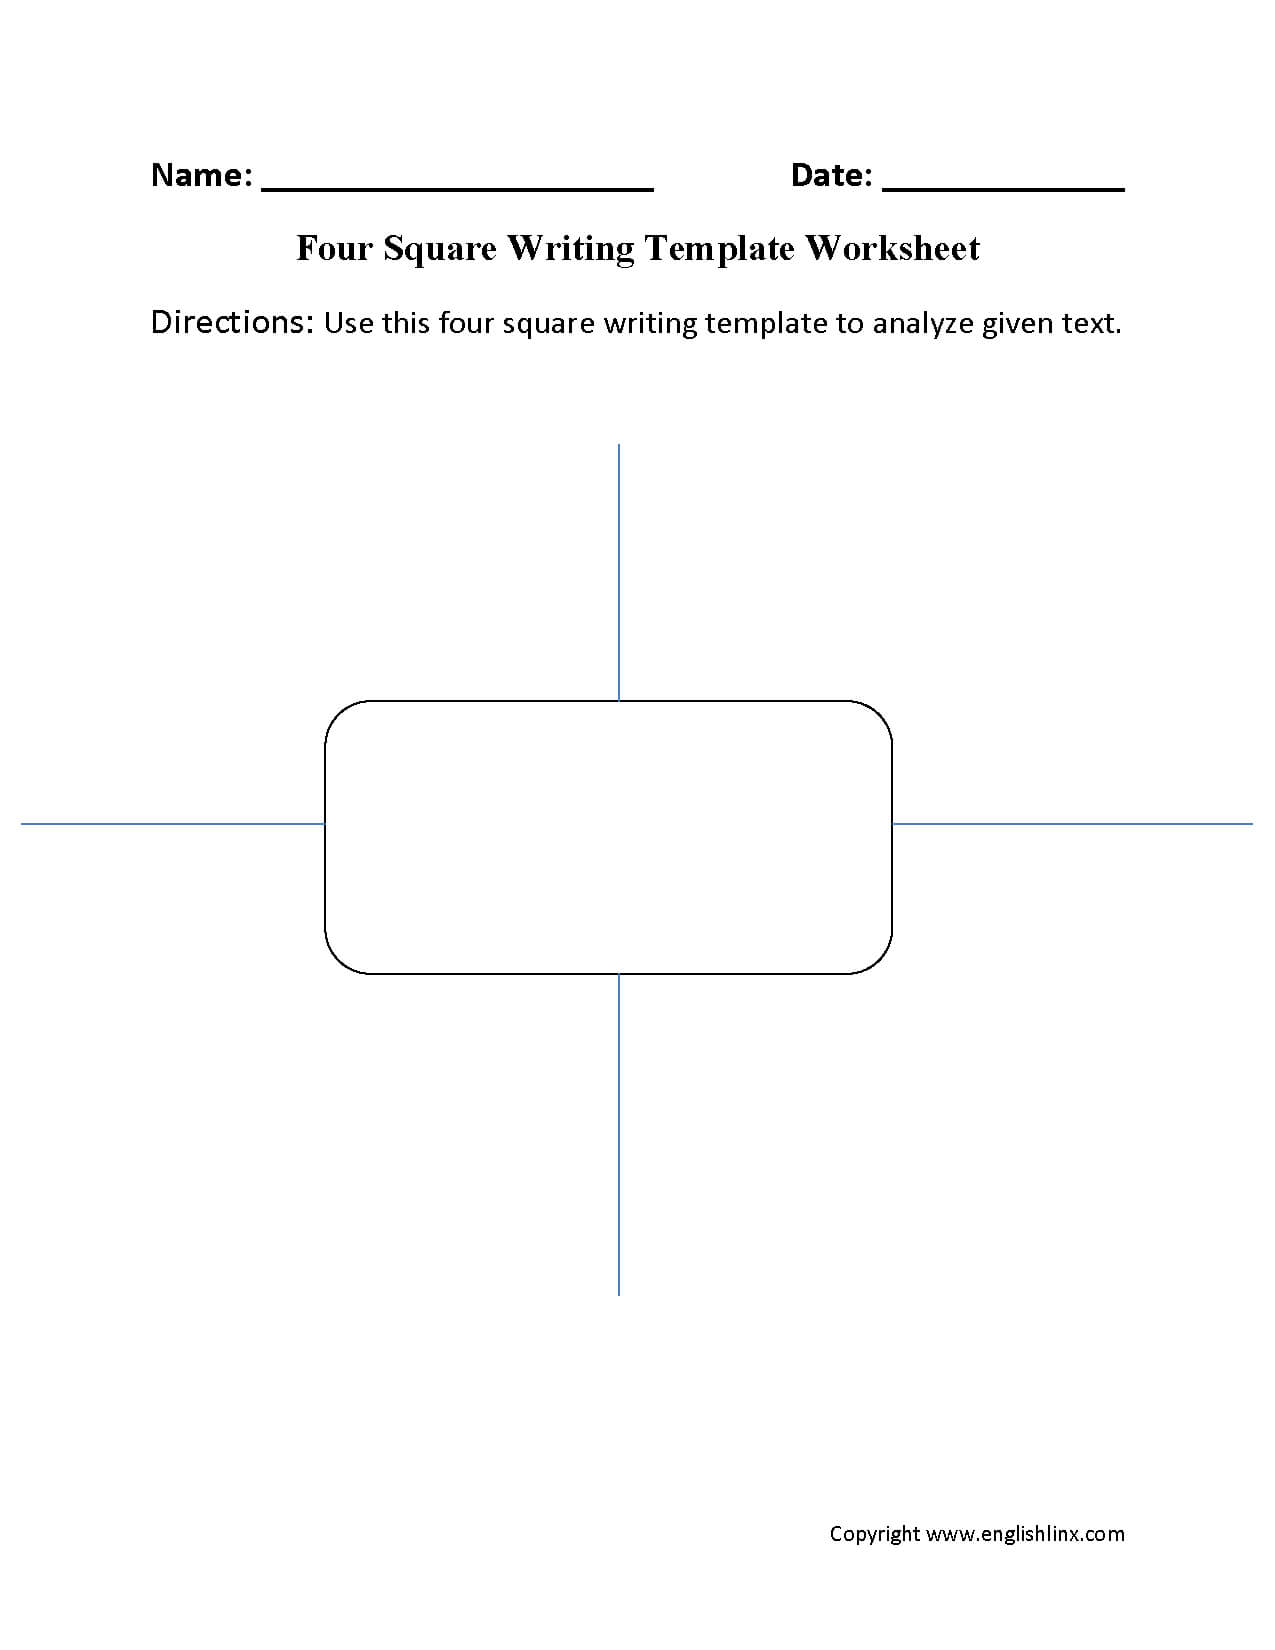 Writing Template Worksheets | Four Square Writing Template Regarding Blank Four Square Writing Template